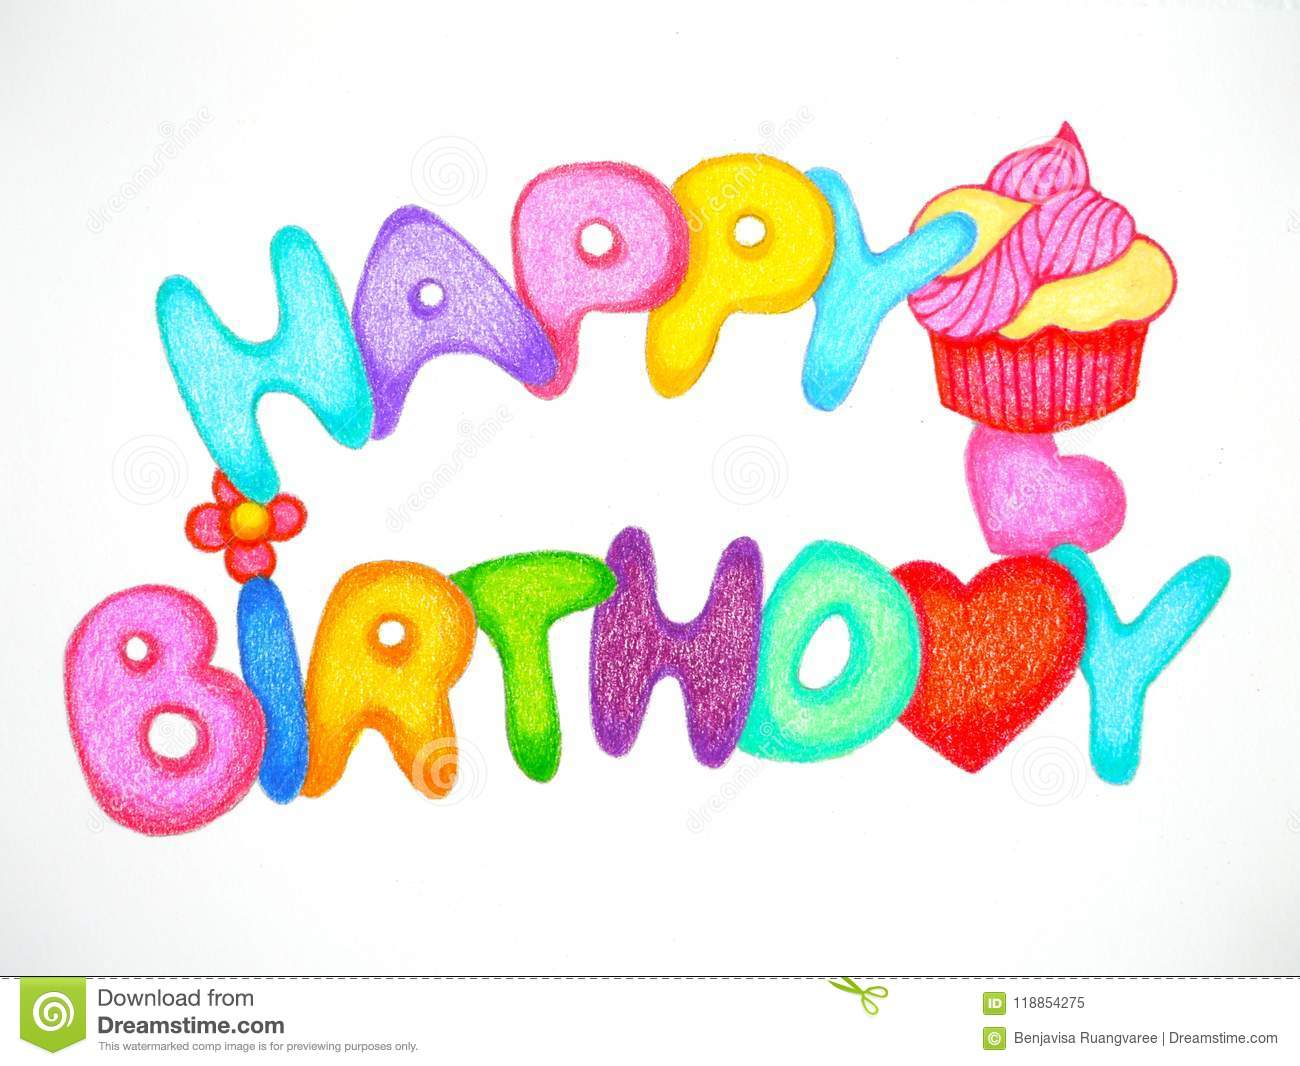 Happy Birthday Card Pencil Color Hand Drawing Illustration Design